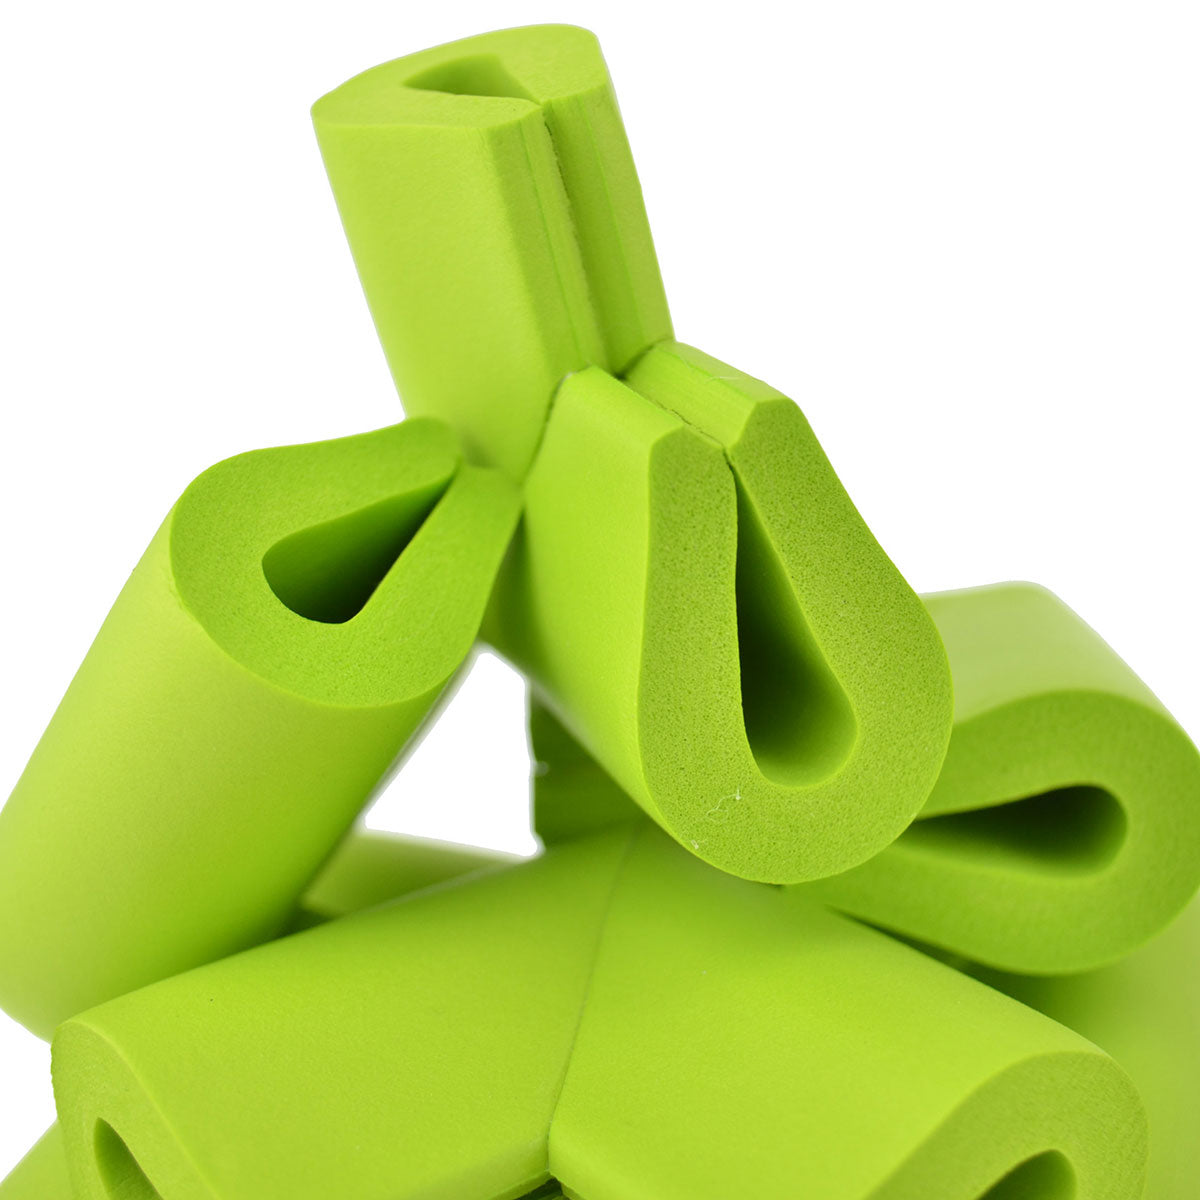 12 Pieces Green U-Shaped Foam Corner Protectors